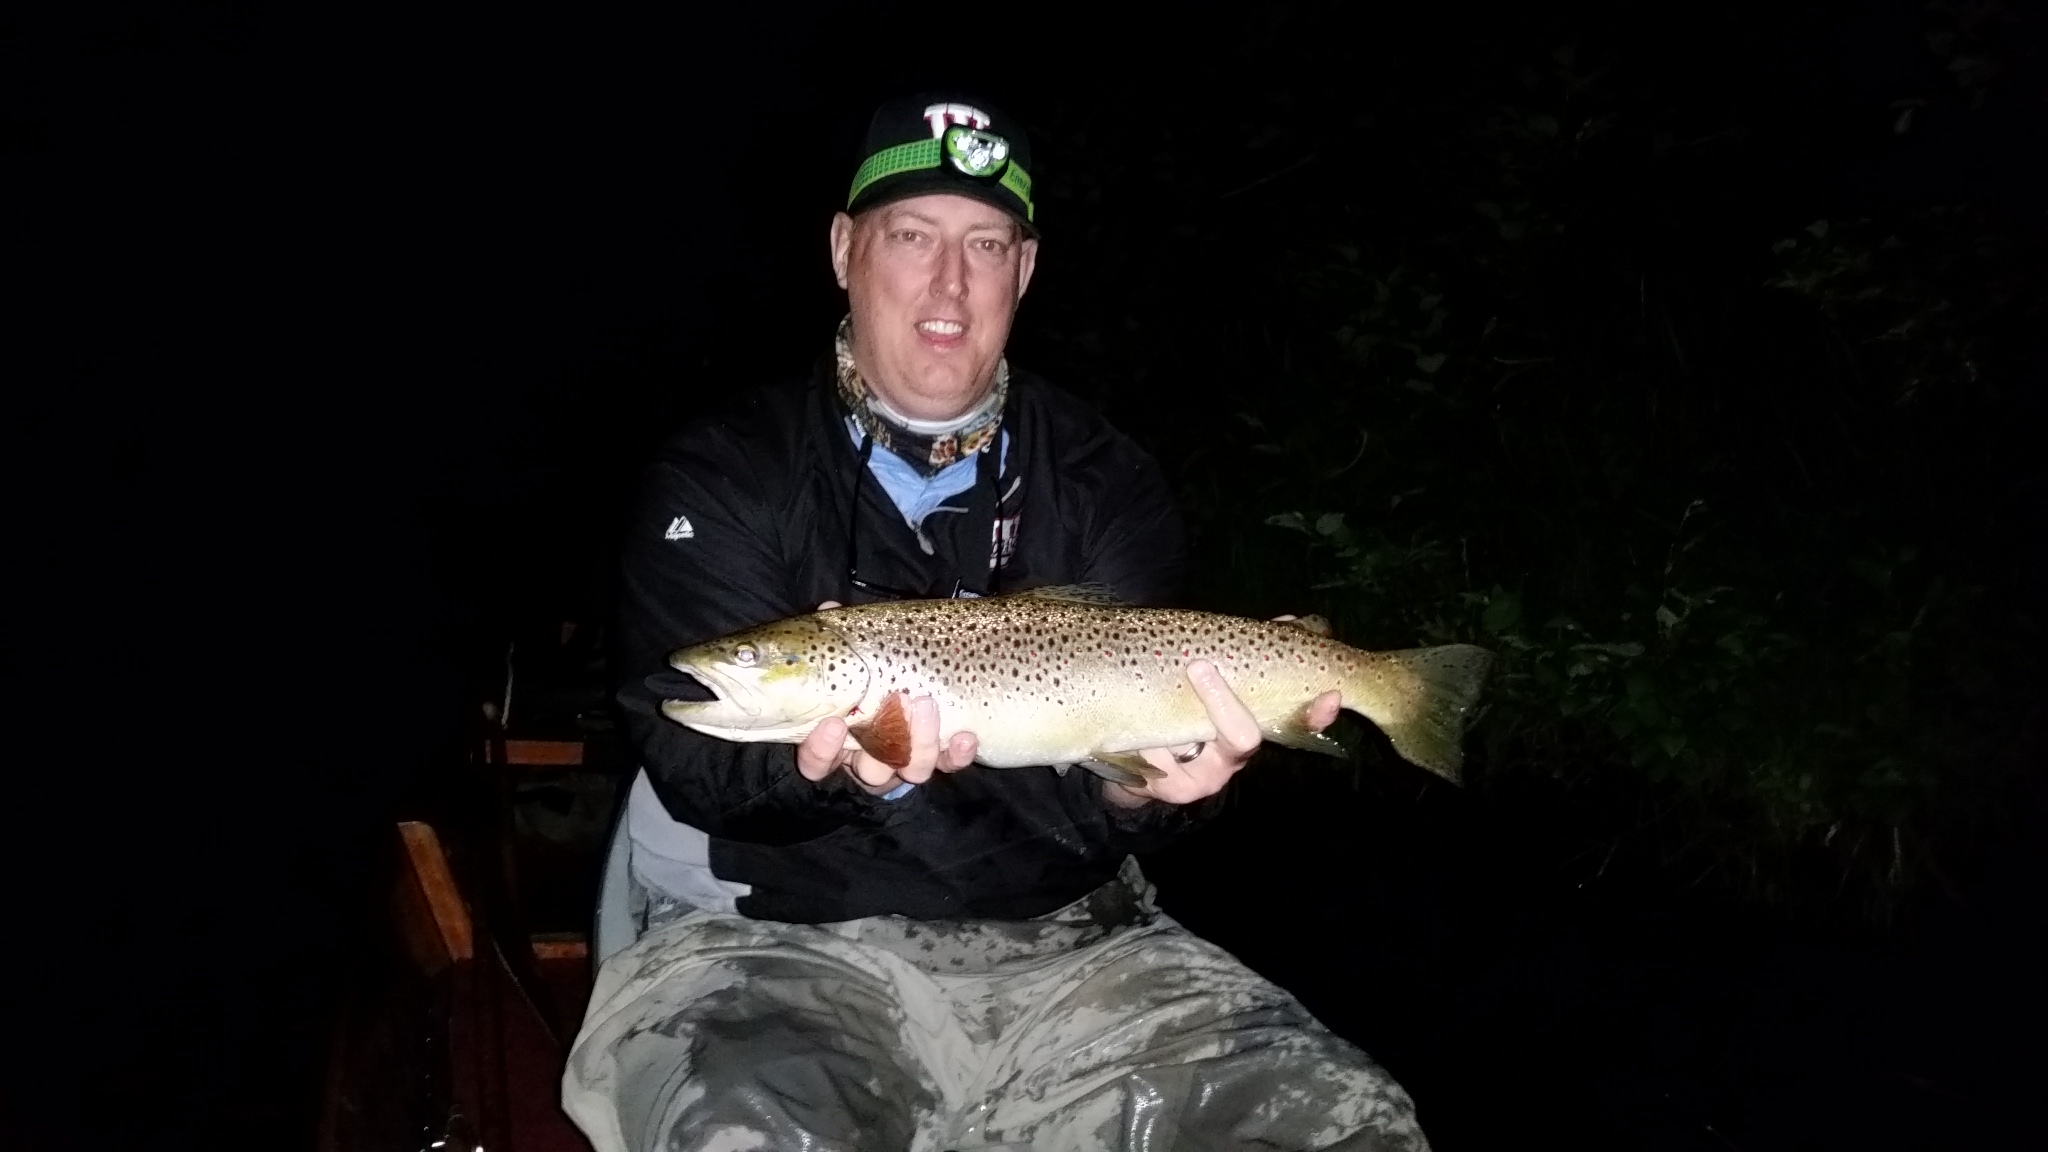 Tim Landeseld with a whopper of a brown caught on a bamboo rod his uncle made.